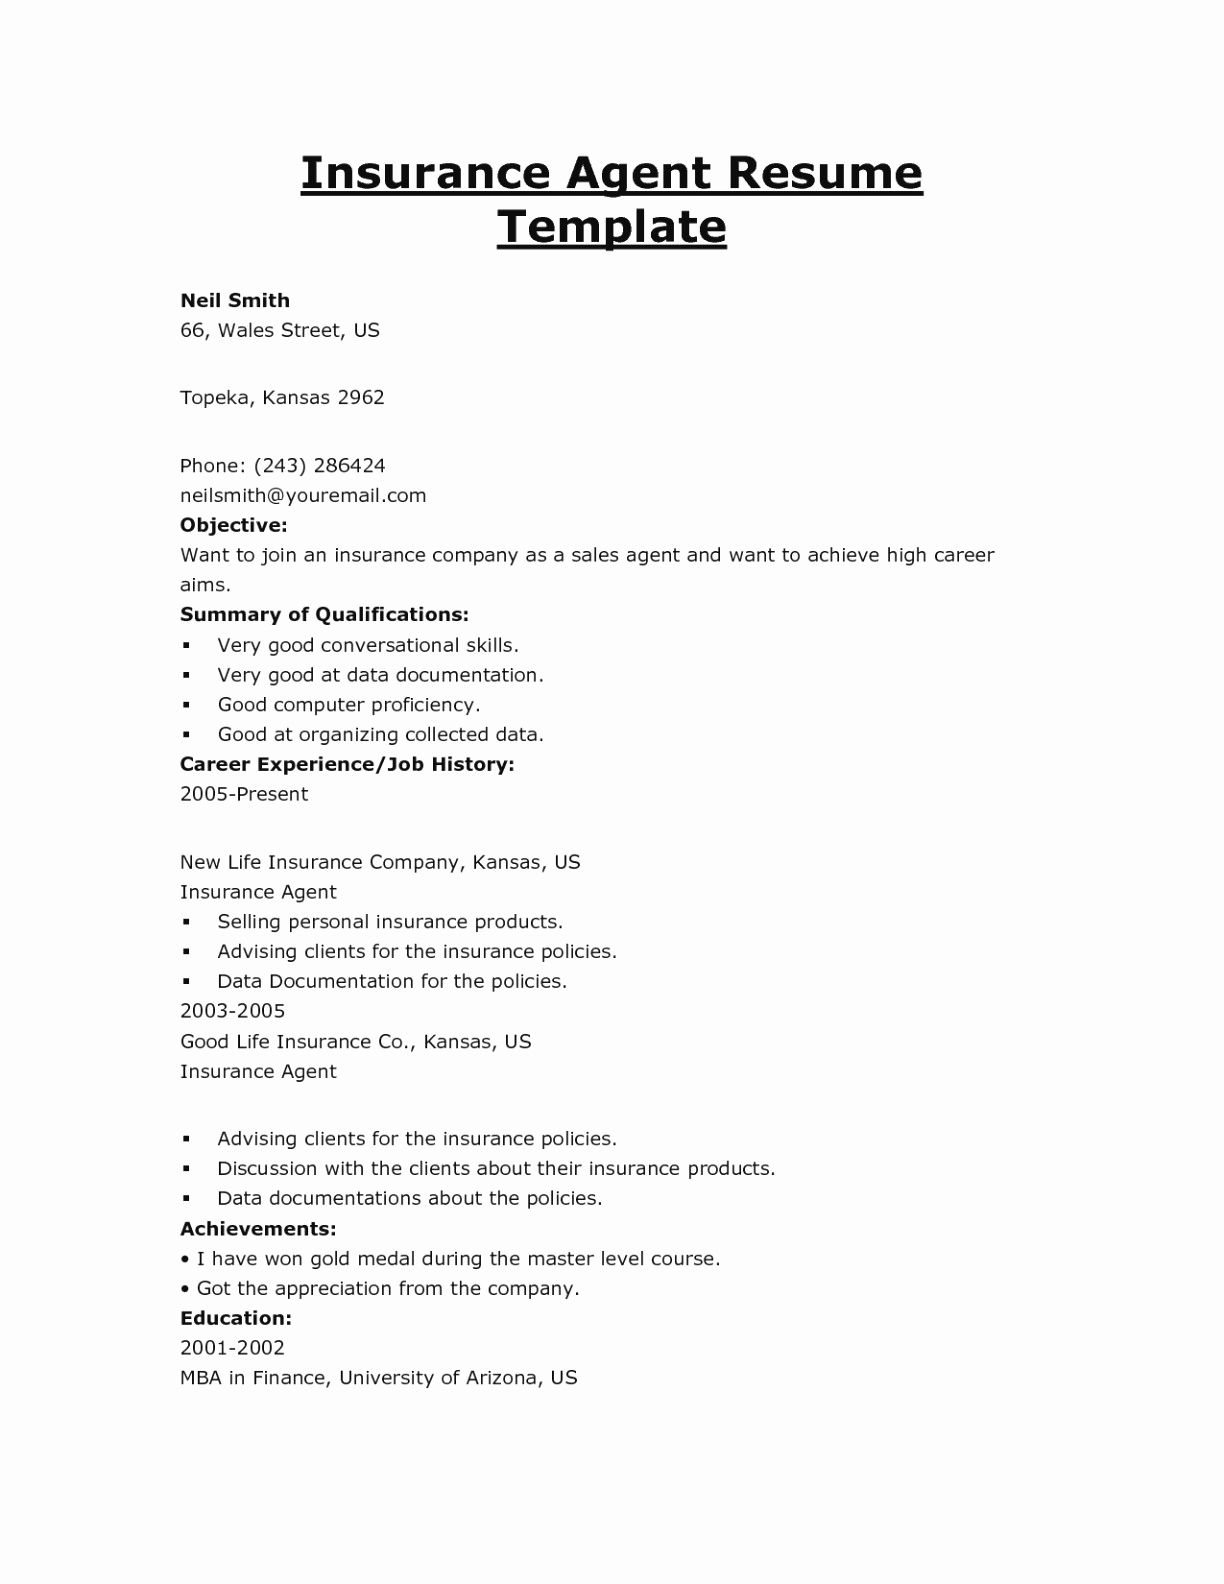 Resume for Insurance Agent - Insurance Certificate Template New Stay at Home Mom Cover Letter New